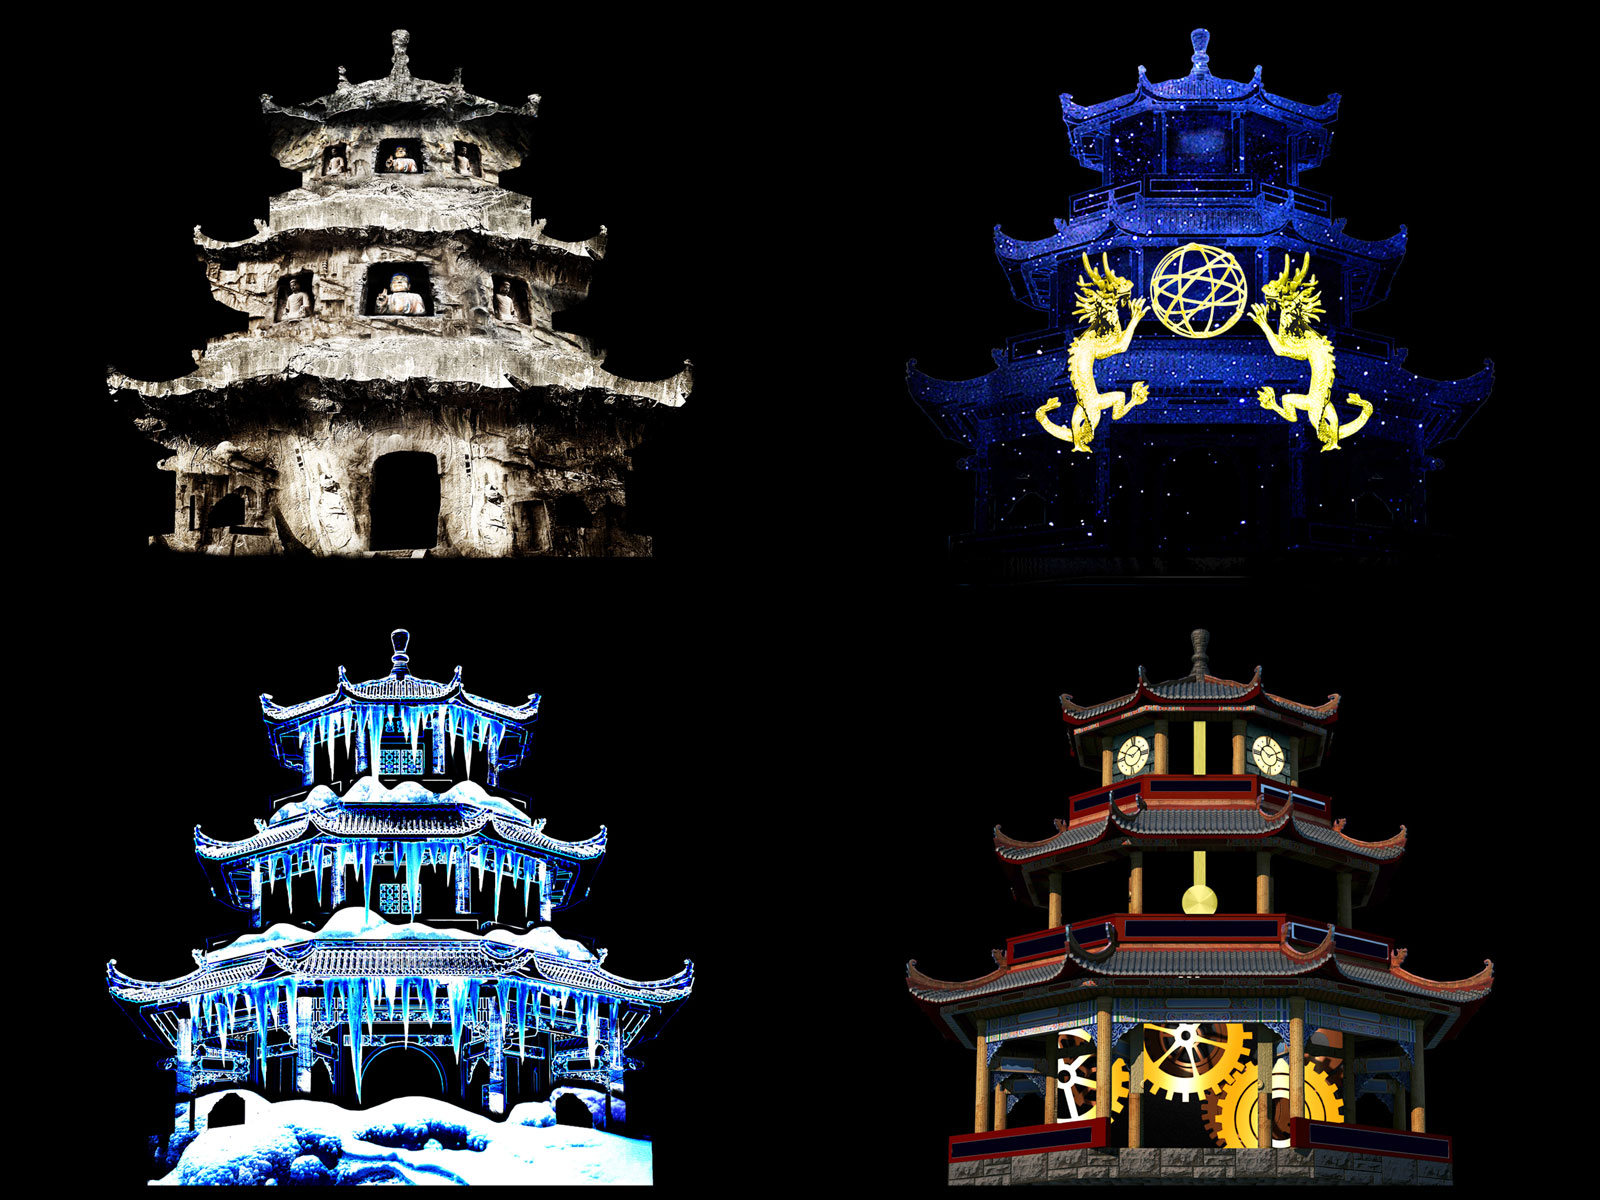 Pagoda  Image Editing, Photoshop   Winter, 2014   Some visual effects for an ancient pagoda projection mappingproject